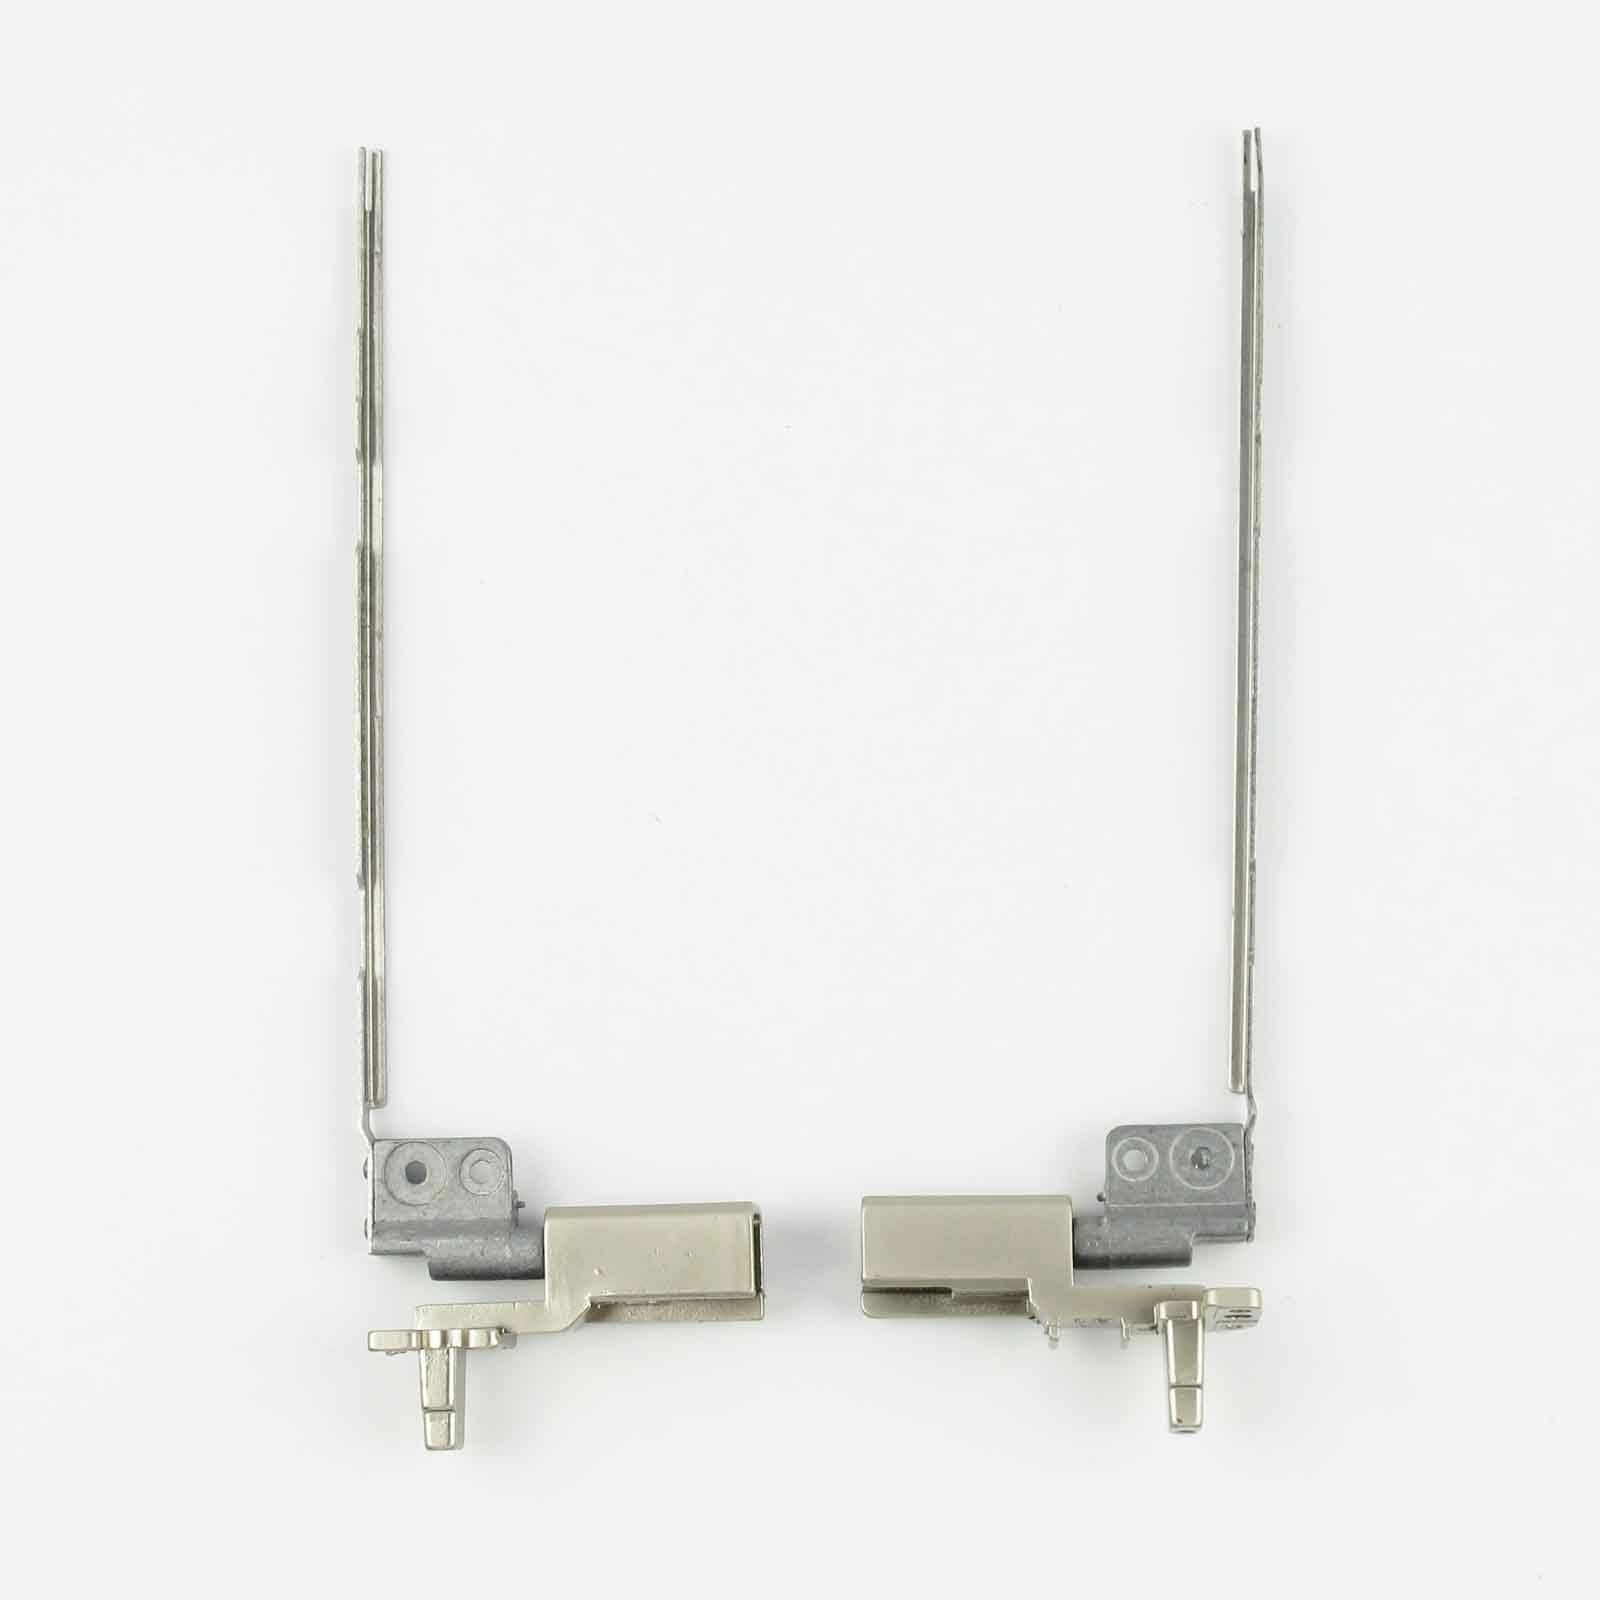 New LCD Hinge For Lenovo ThinkPad T430 T430i LCD Hinges Screen Left And Right Axis Shaft 04W6863 04W6864